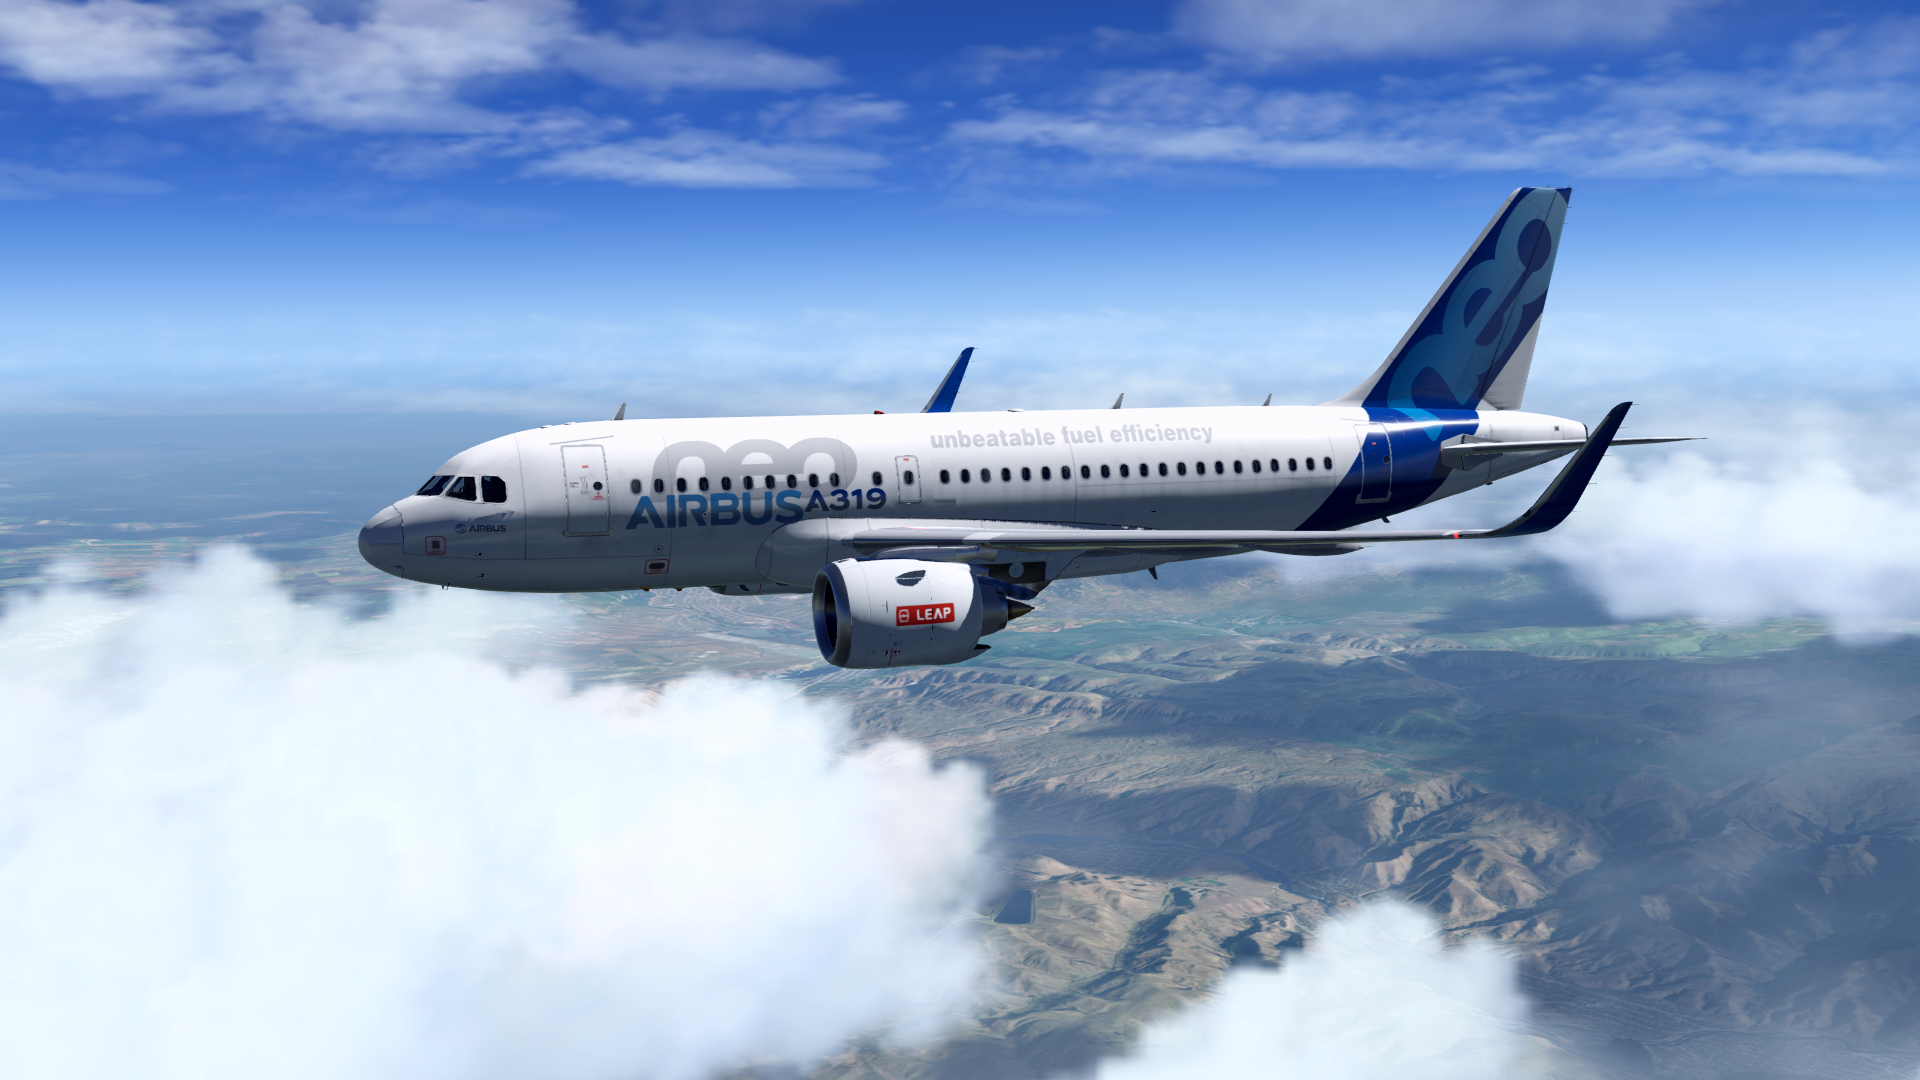 a319 - 2020-06-22 14.40.45.png